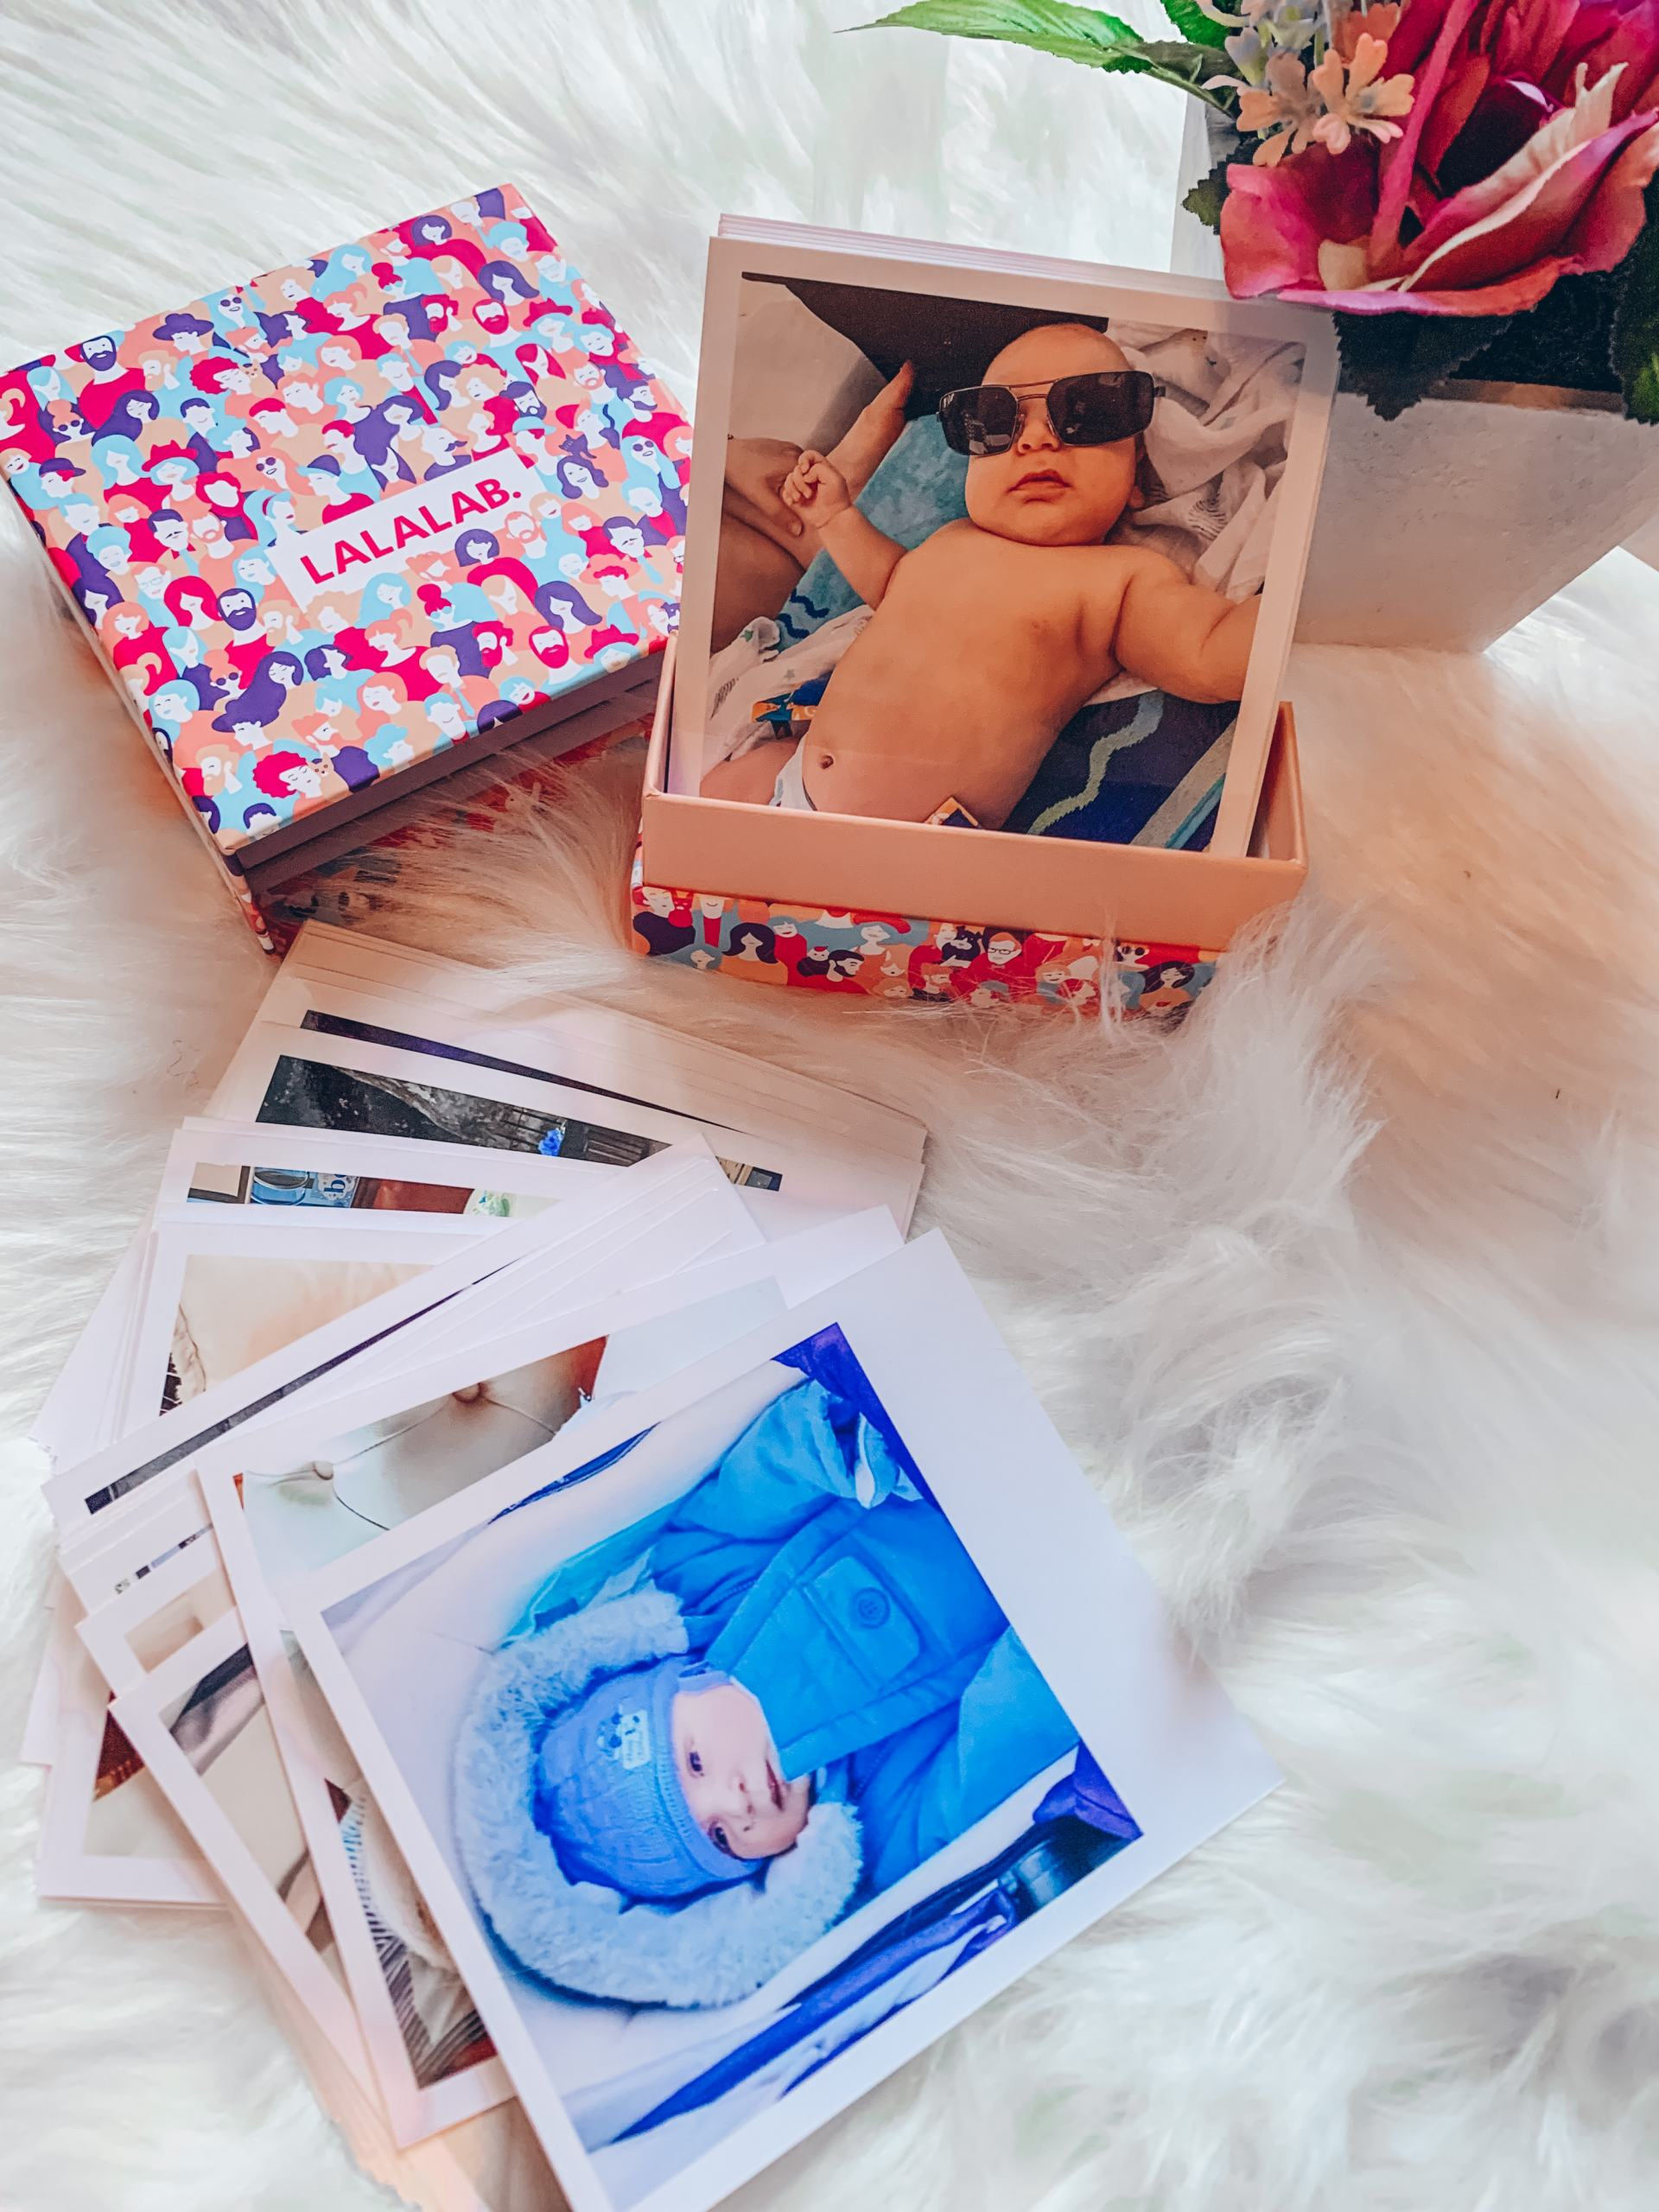 lalalab-photo-printing-app-review-www.stylinglifetoday.com